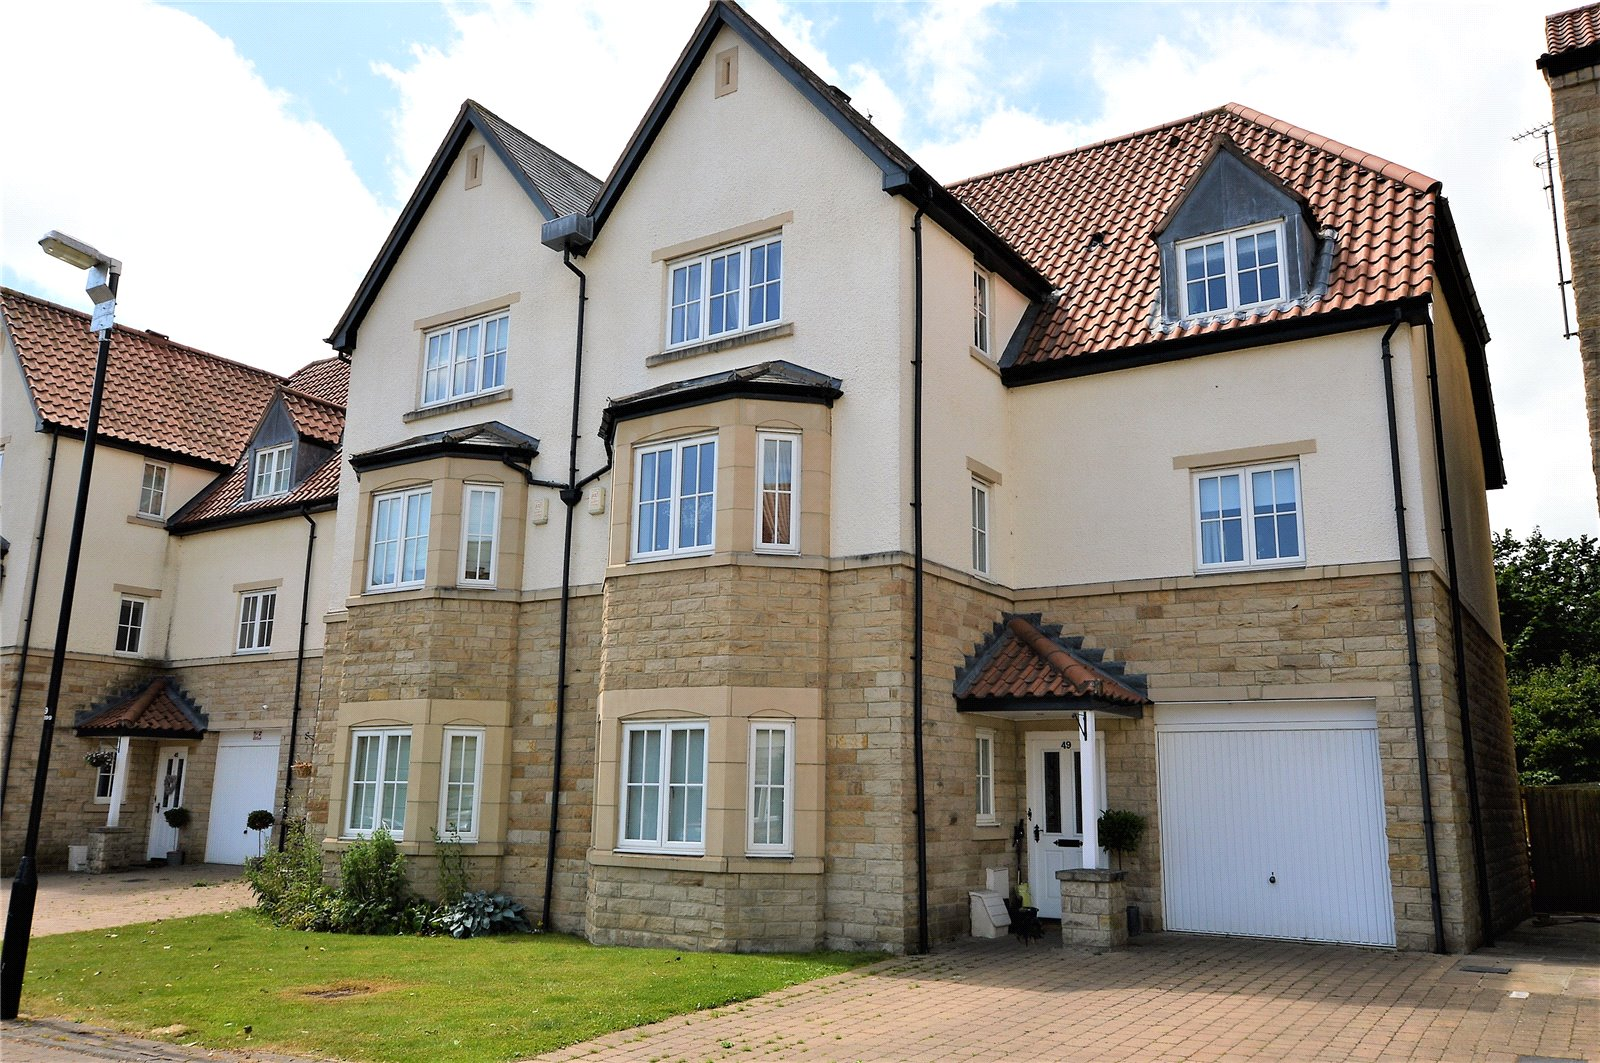 property for sale in Wetherby, exterior of home half stone half plaster